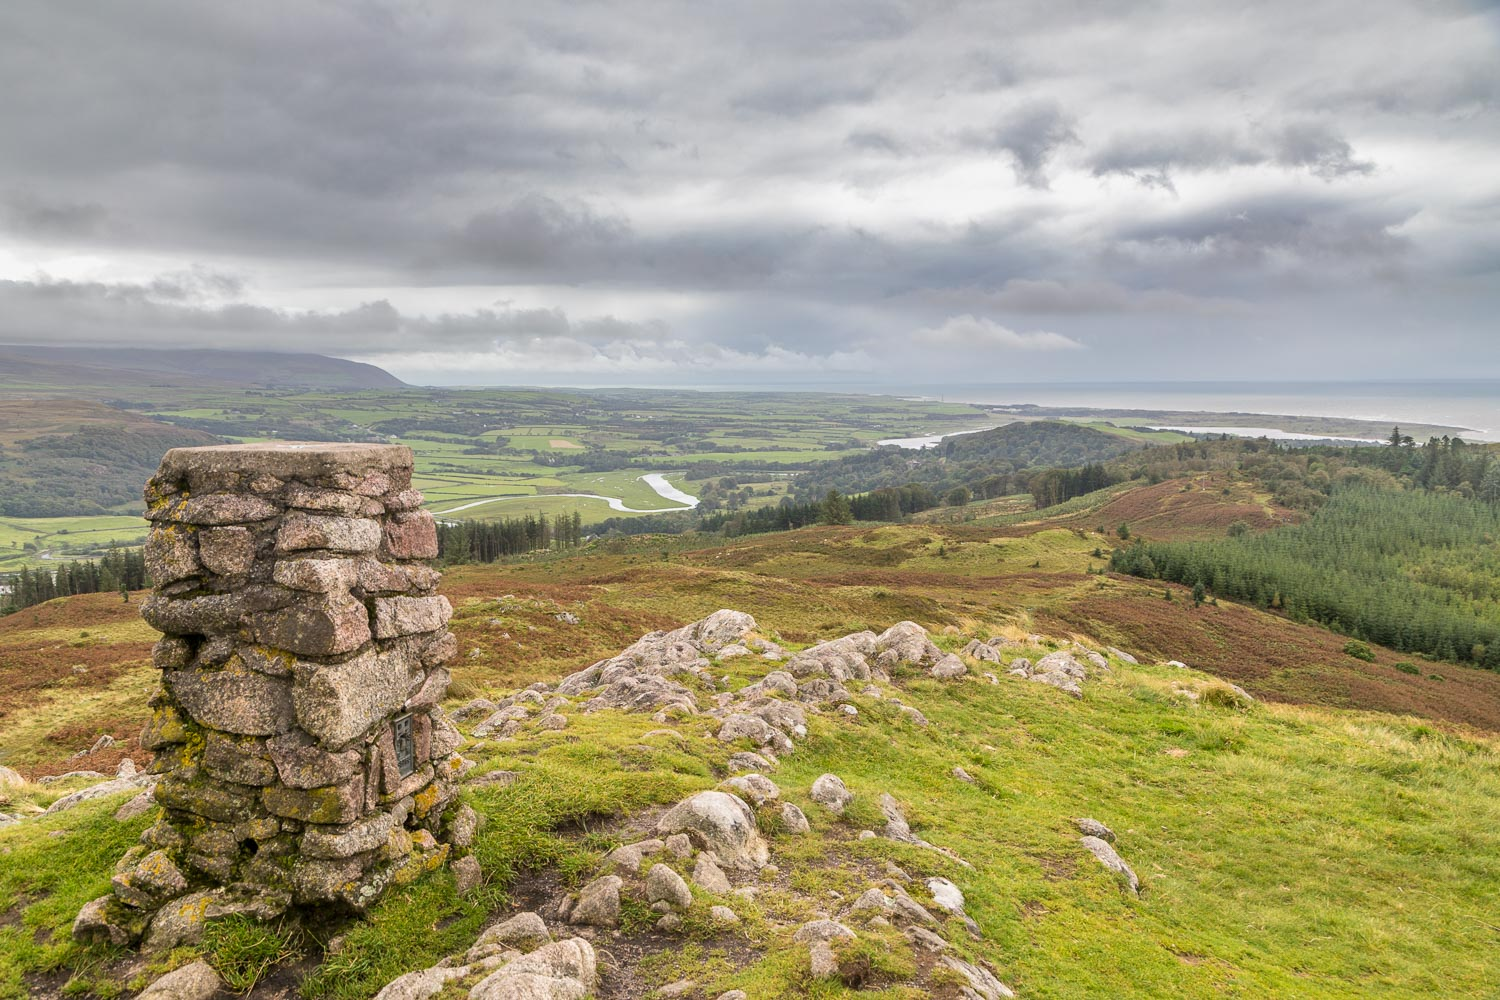 Muncaster Fell summit, River Esk, Irish Sea